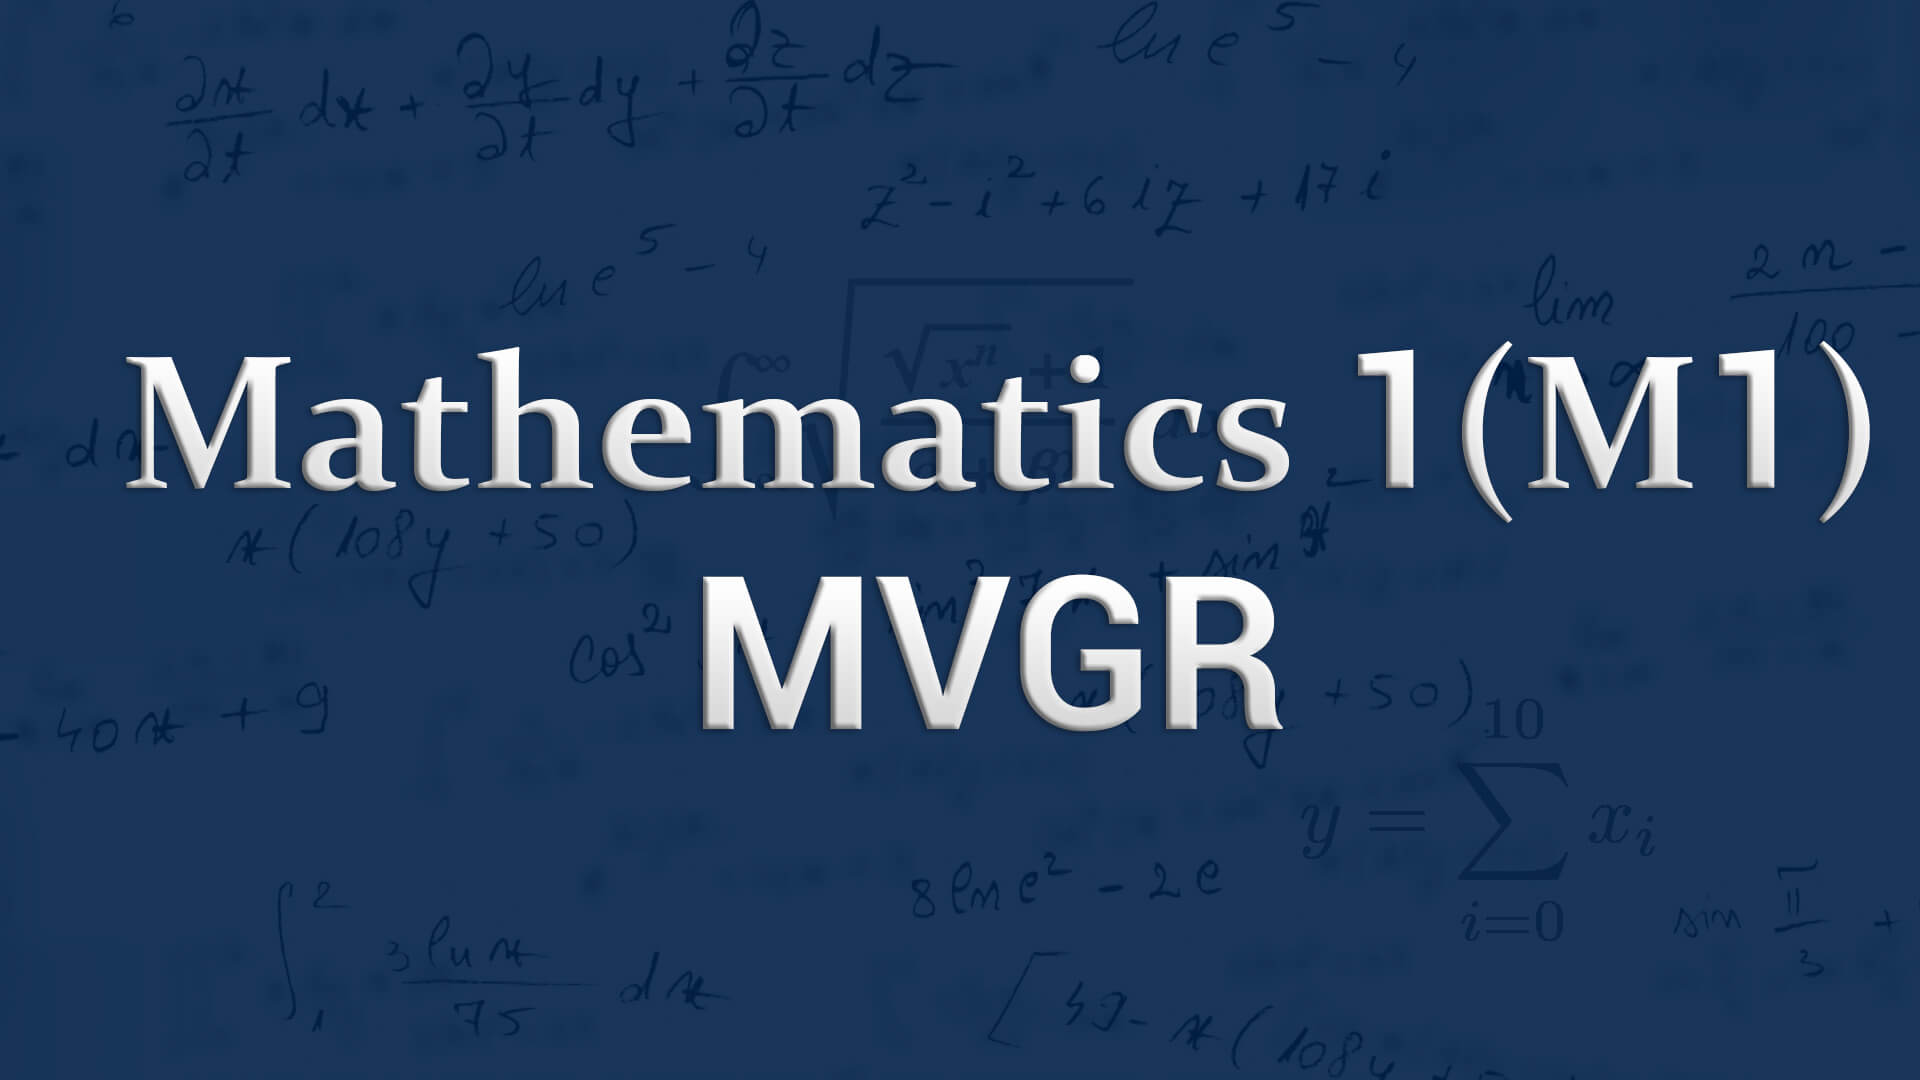 Mathematics 1 for MVGR online videos